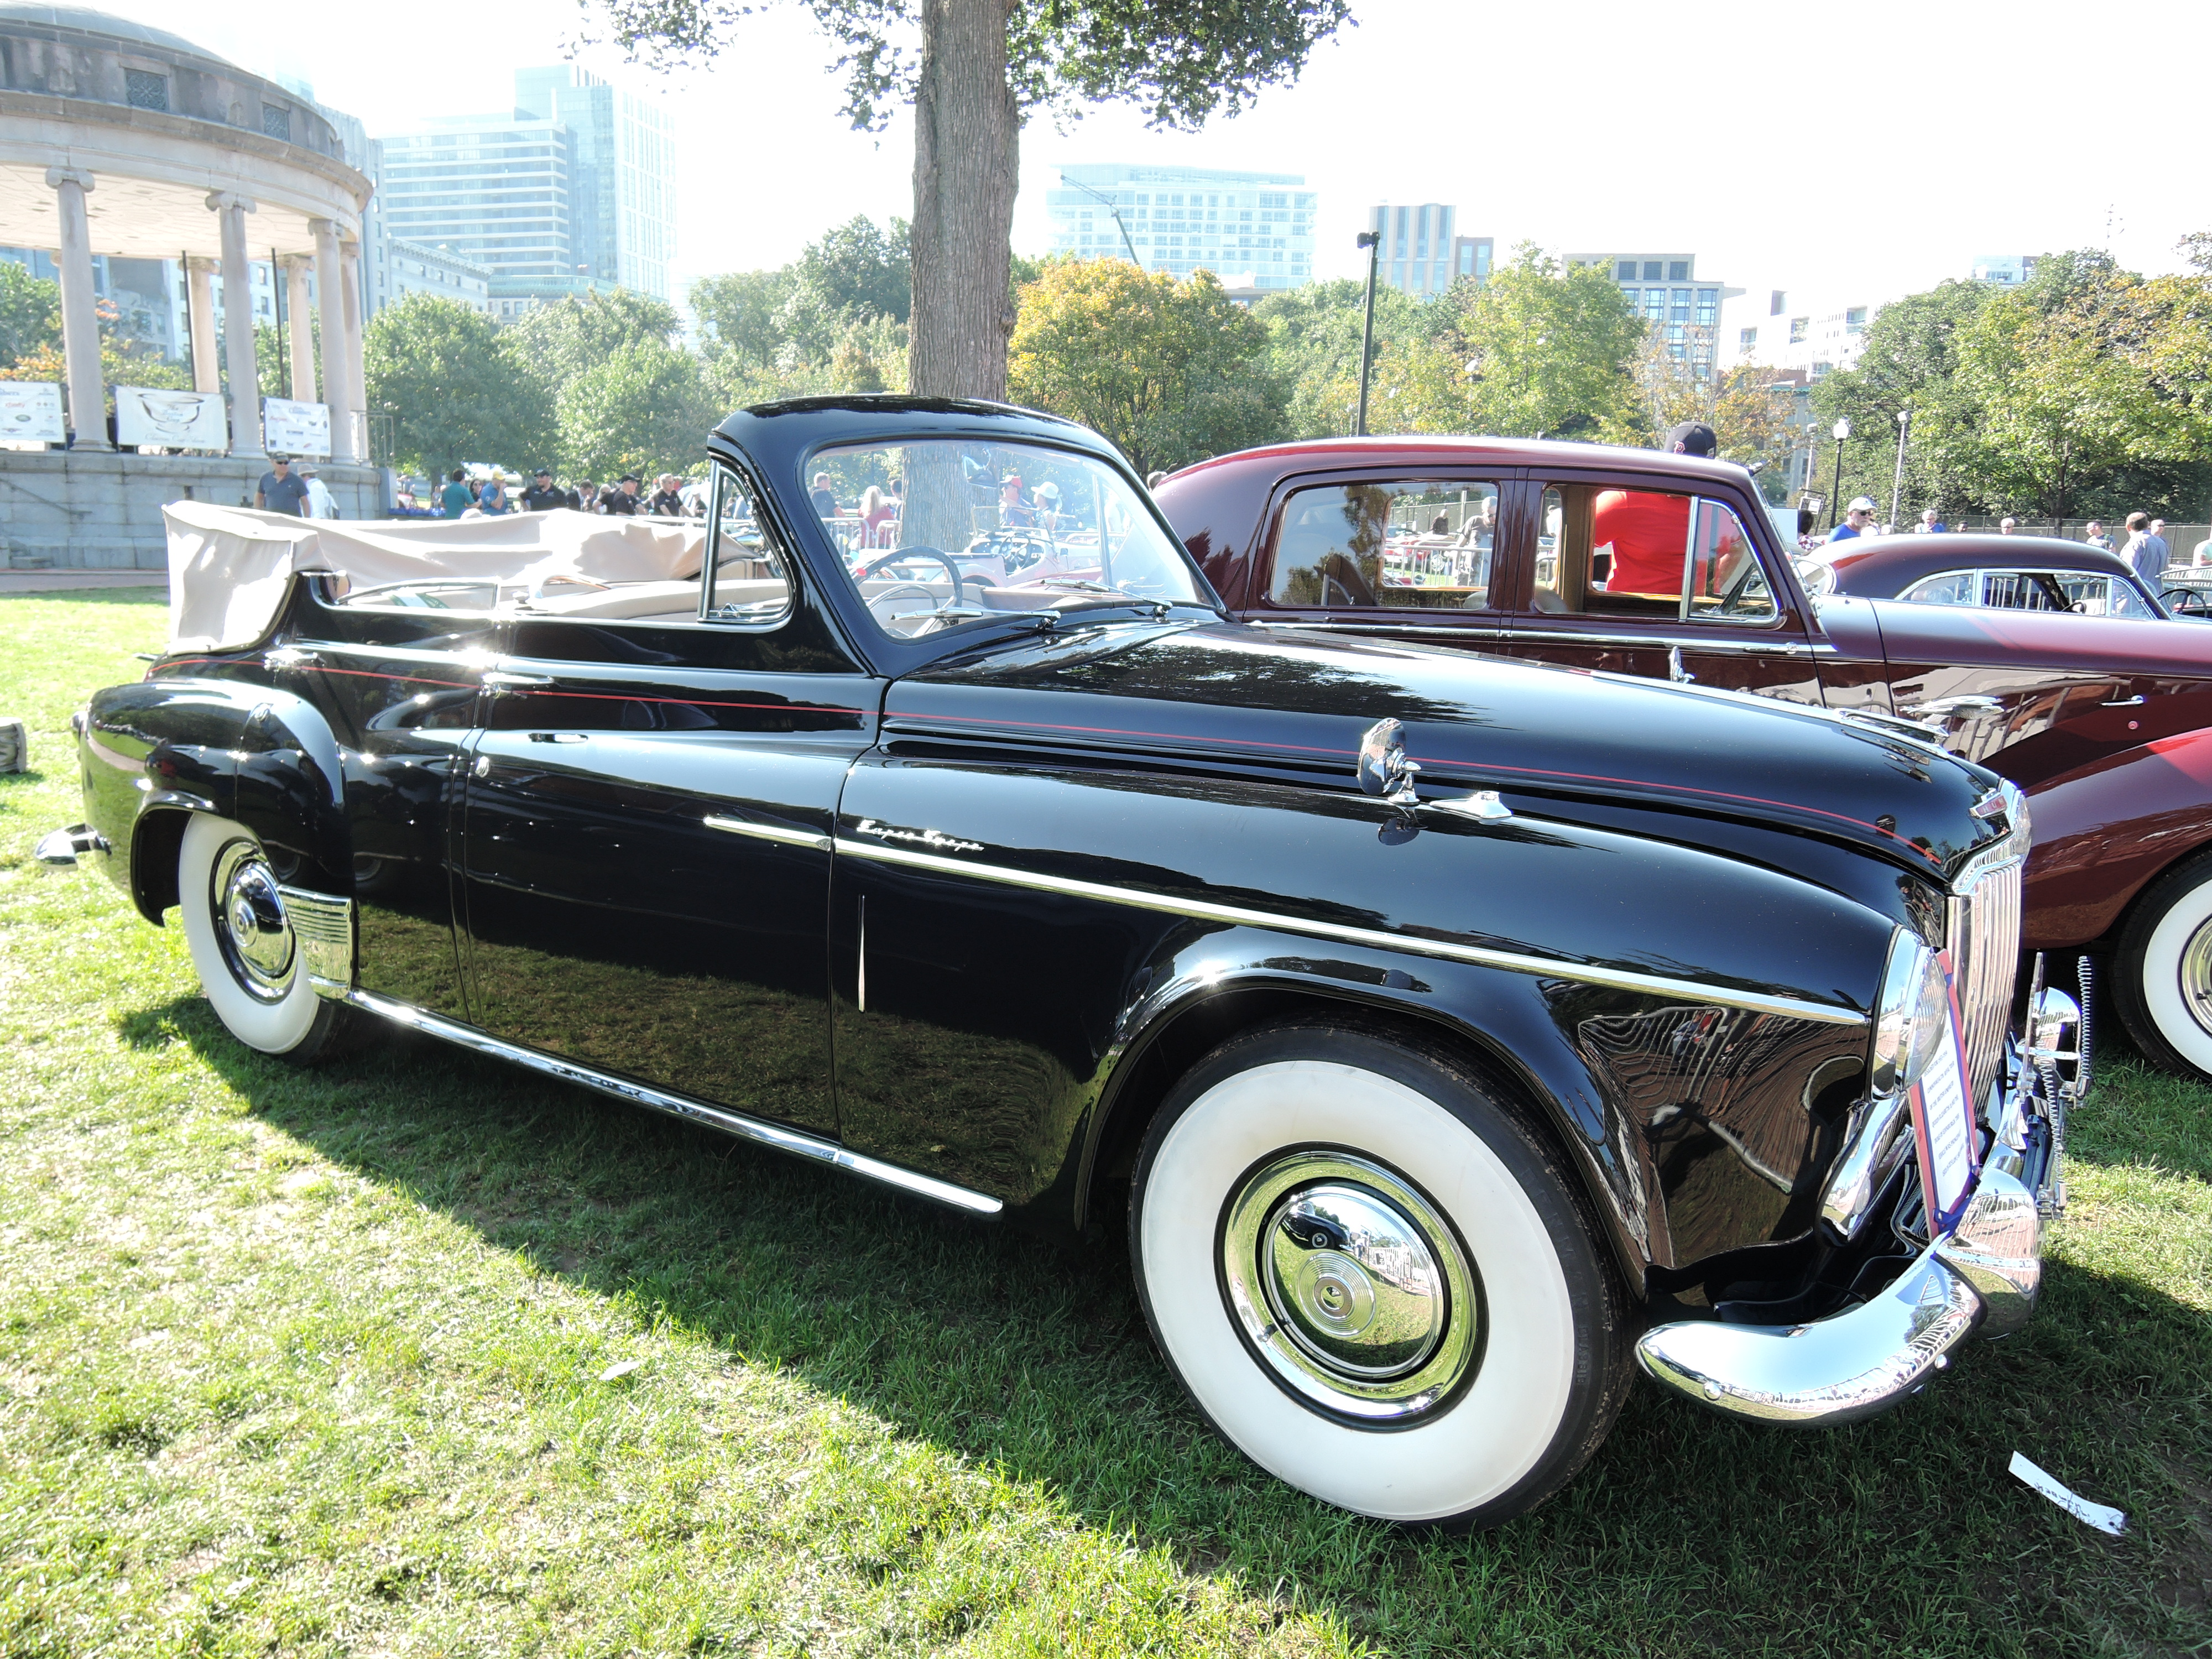 black 1953 Humber Super Snipe Phaeton; The Queen's Car - The Boston Cup 2017